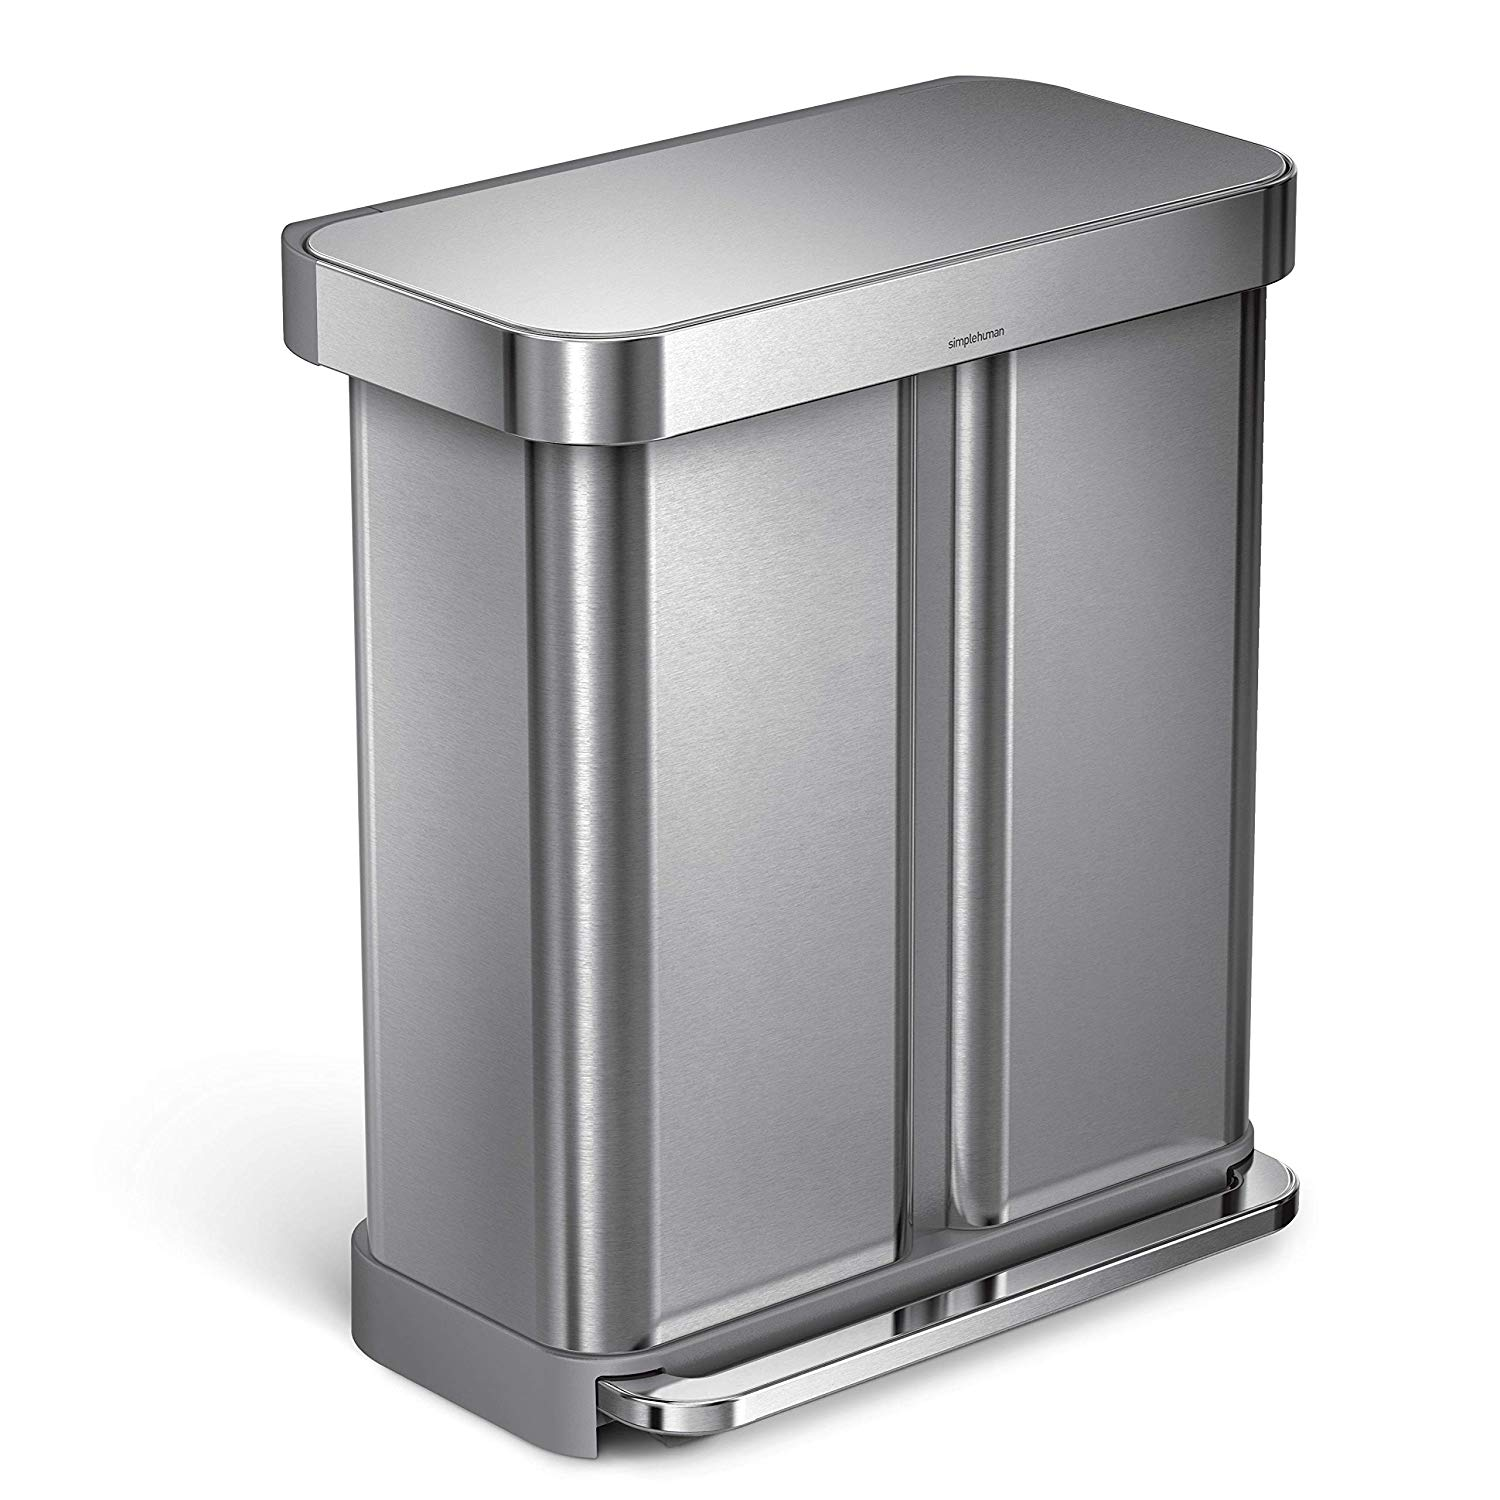 Best Dual Compartment Trash Can with Steel Pedal Reviews